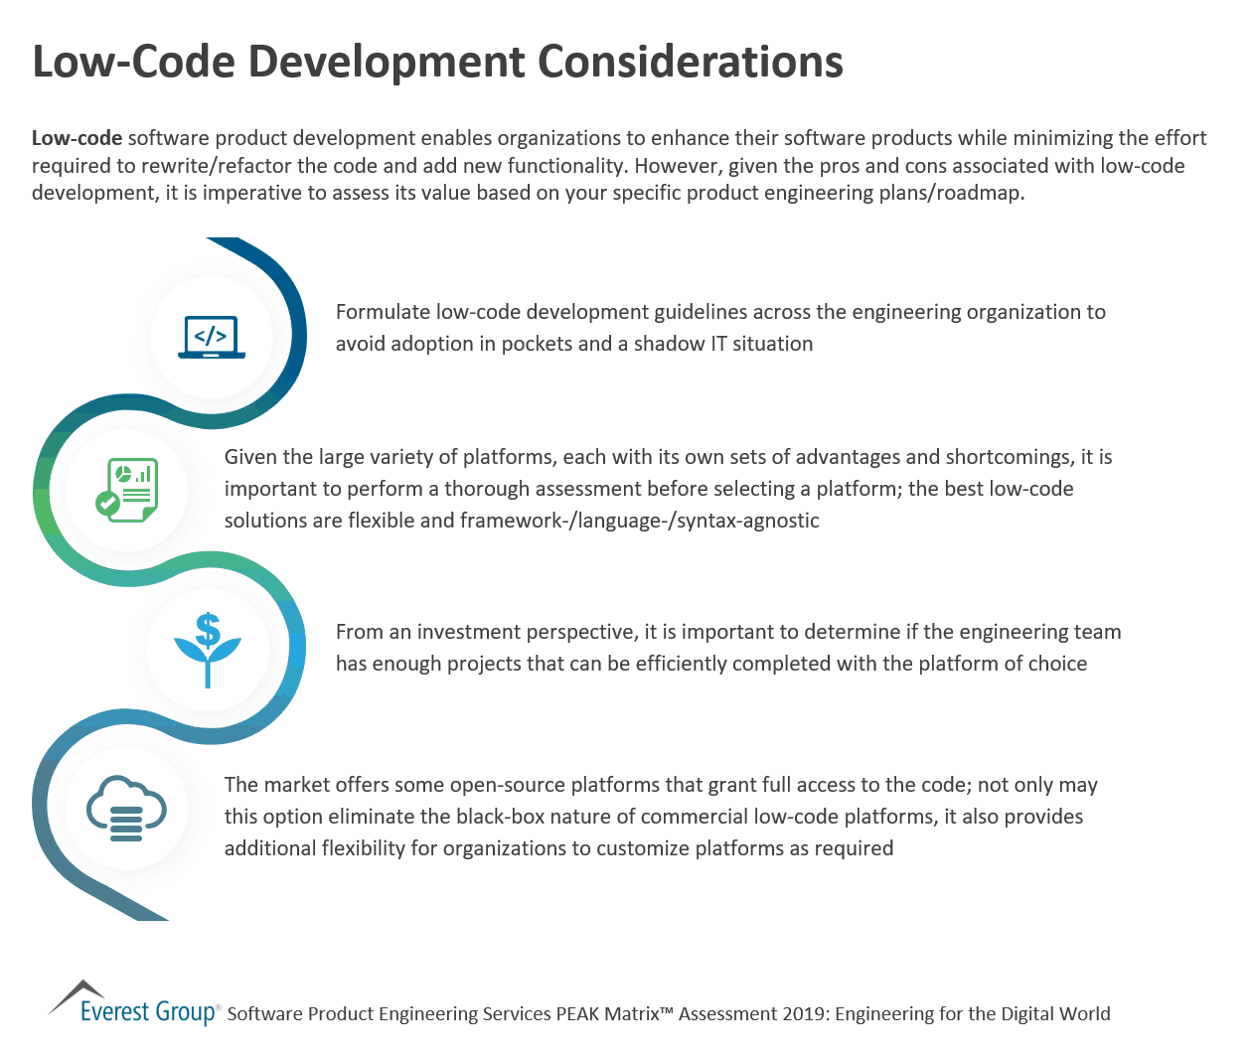 Low-Code Development Considerations